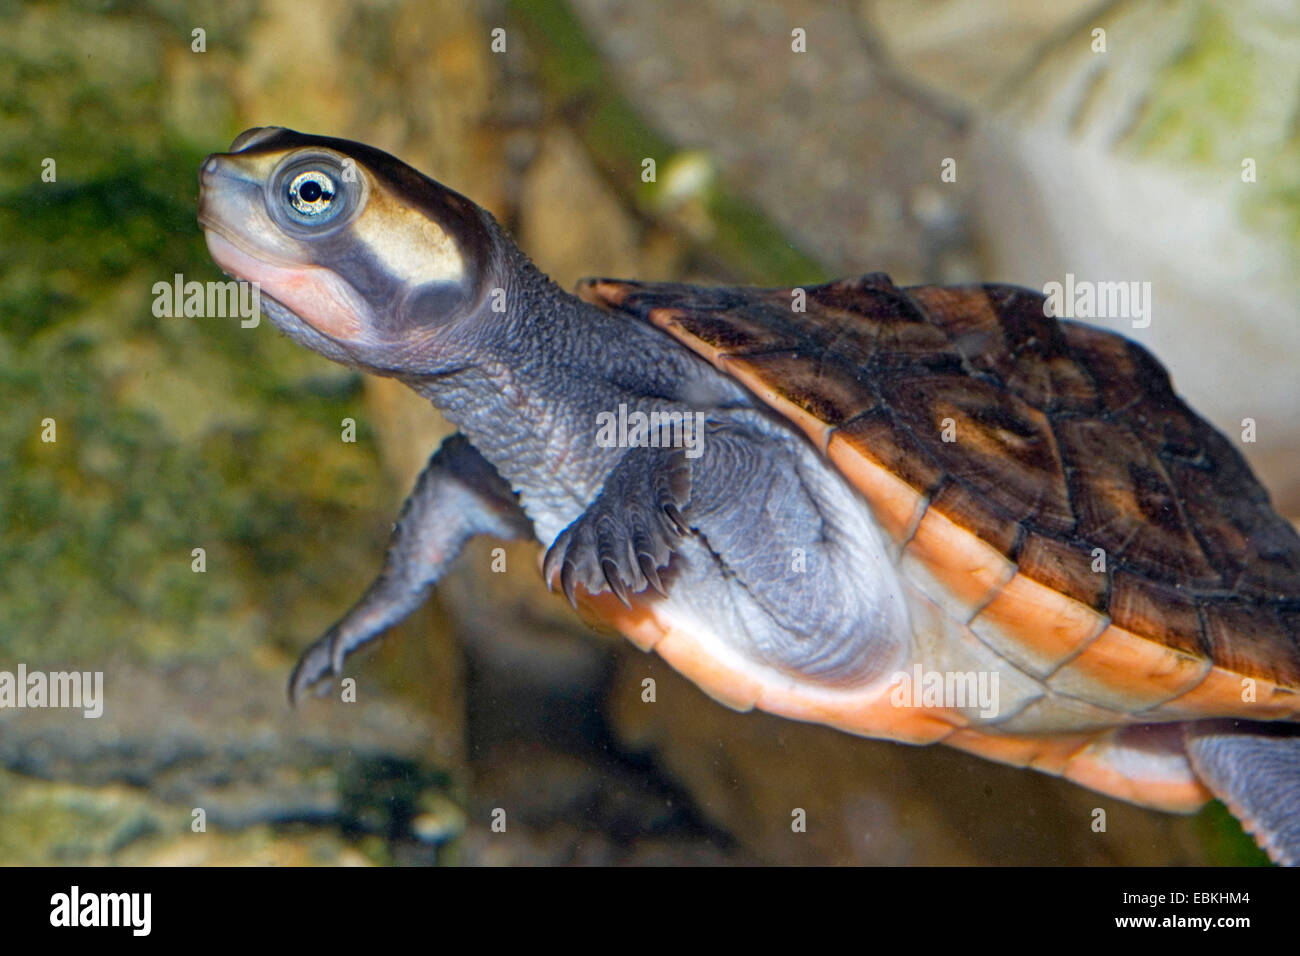 Up For sale is our pet Short Neck Turtle Unsure on the sex and age of the Turtle Has been well looked after Smoked free home Ideal for a pond or large tank We like our Turtle to go to another good home.